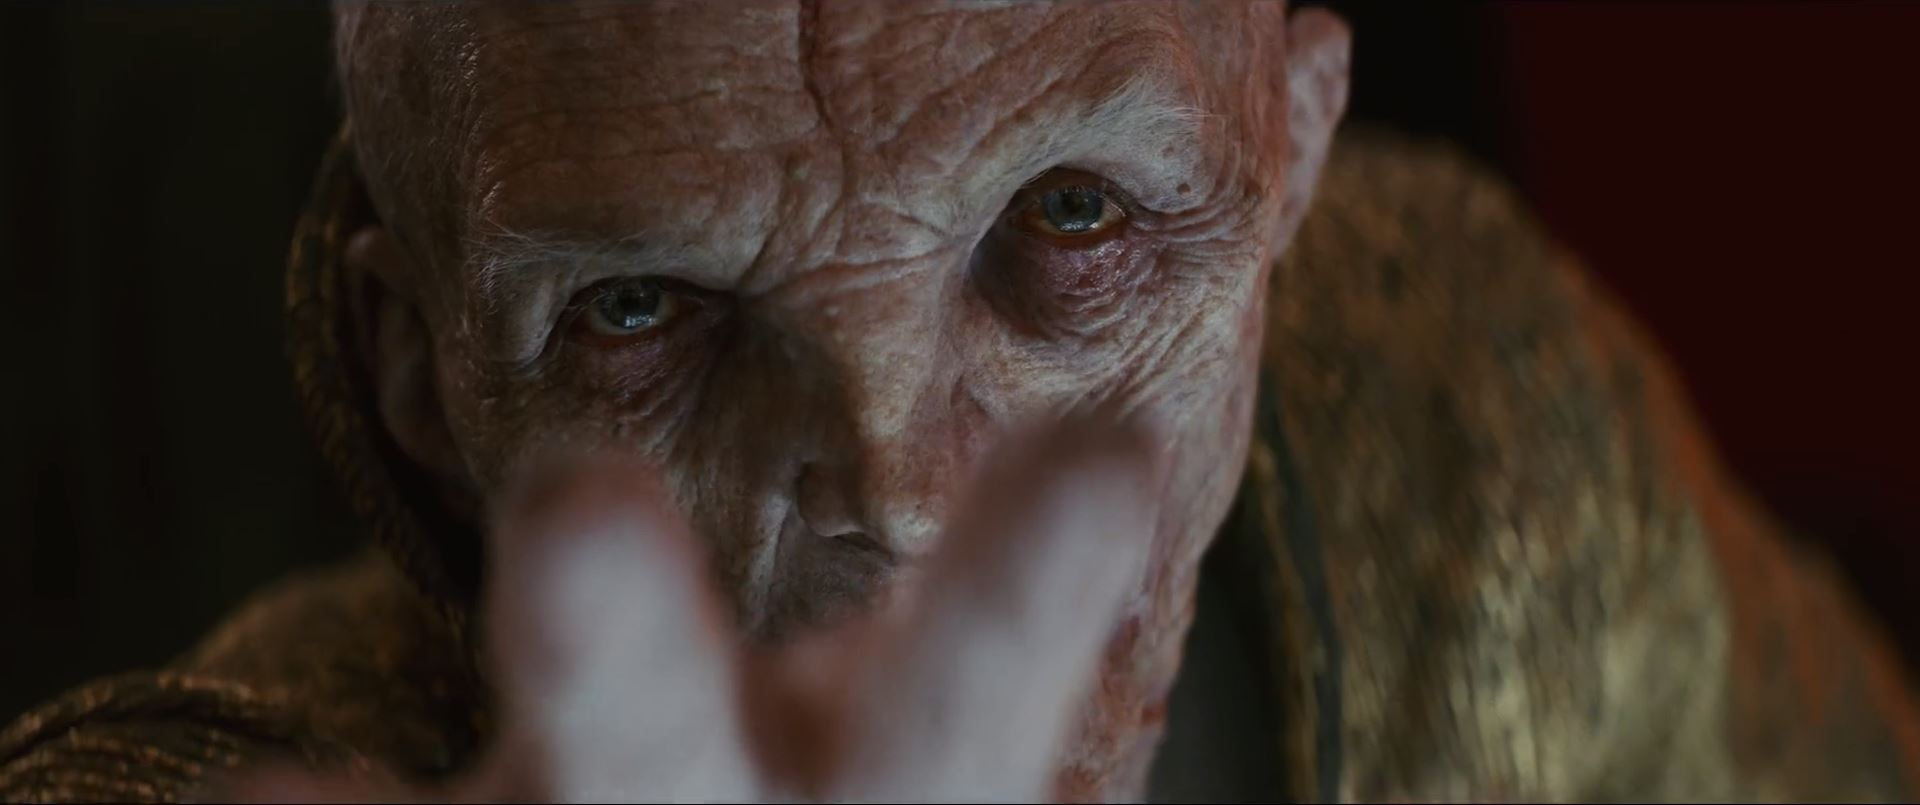 The Last Jedi Trailer - Supreme Leader Snoke